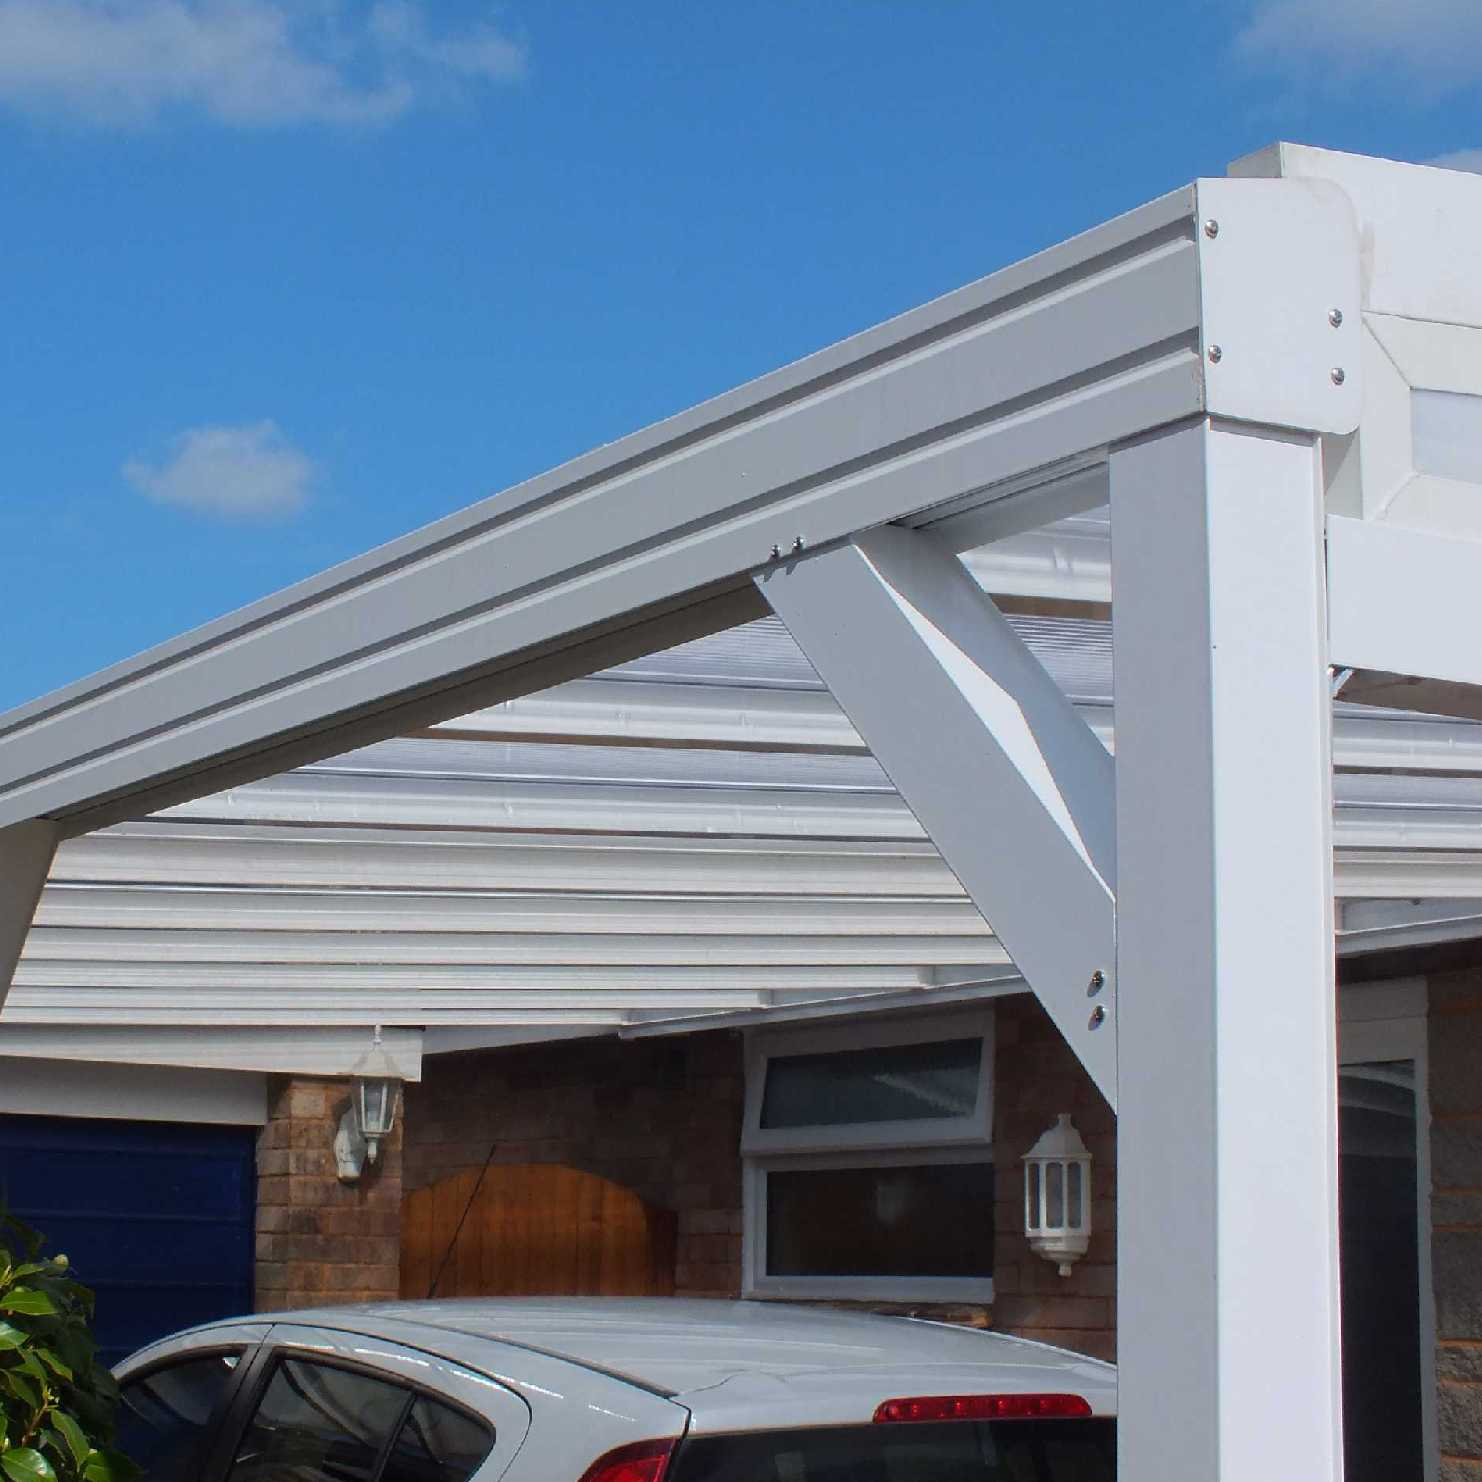 Great deals on Omega Smart Lean-To Canopy with 16mm Polycarbonate Glazing - 7.4m (W) x 2.5m (P), (4) Supporting Posts